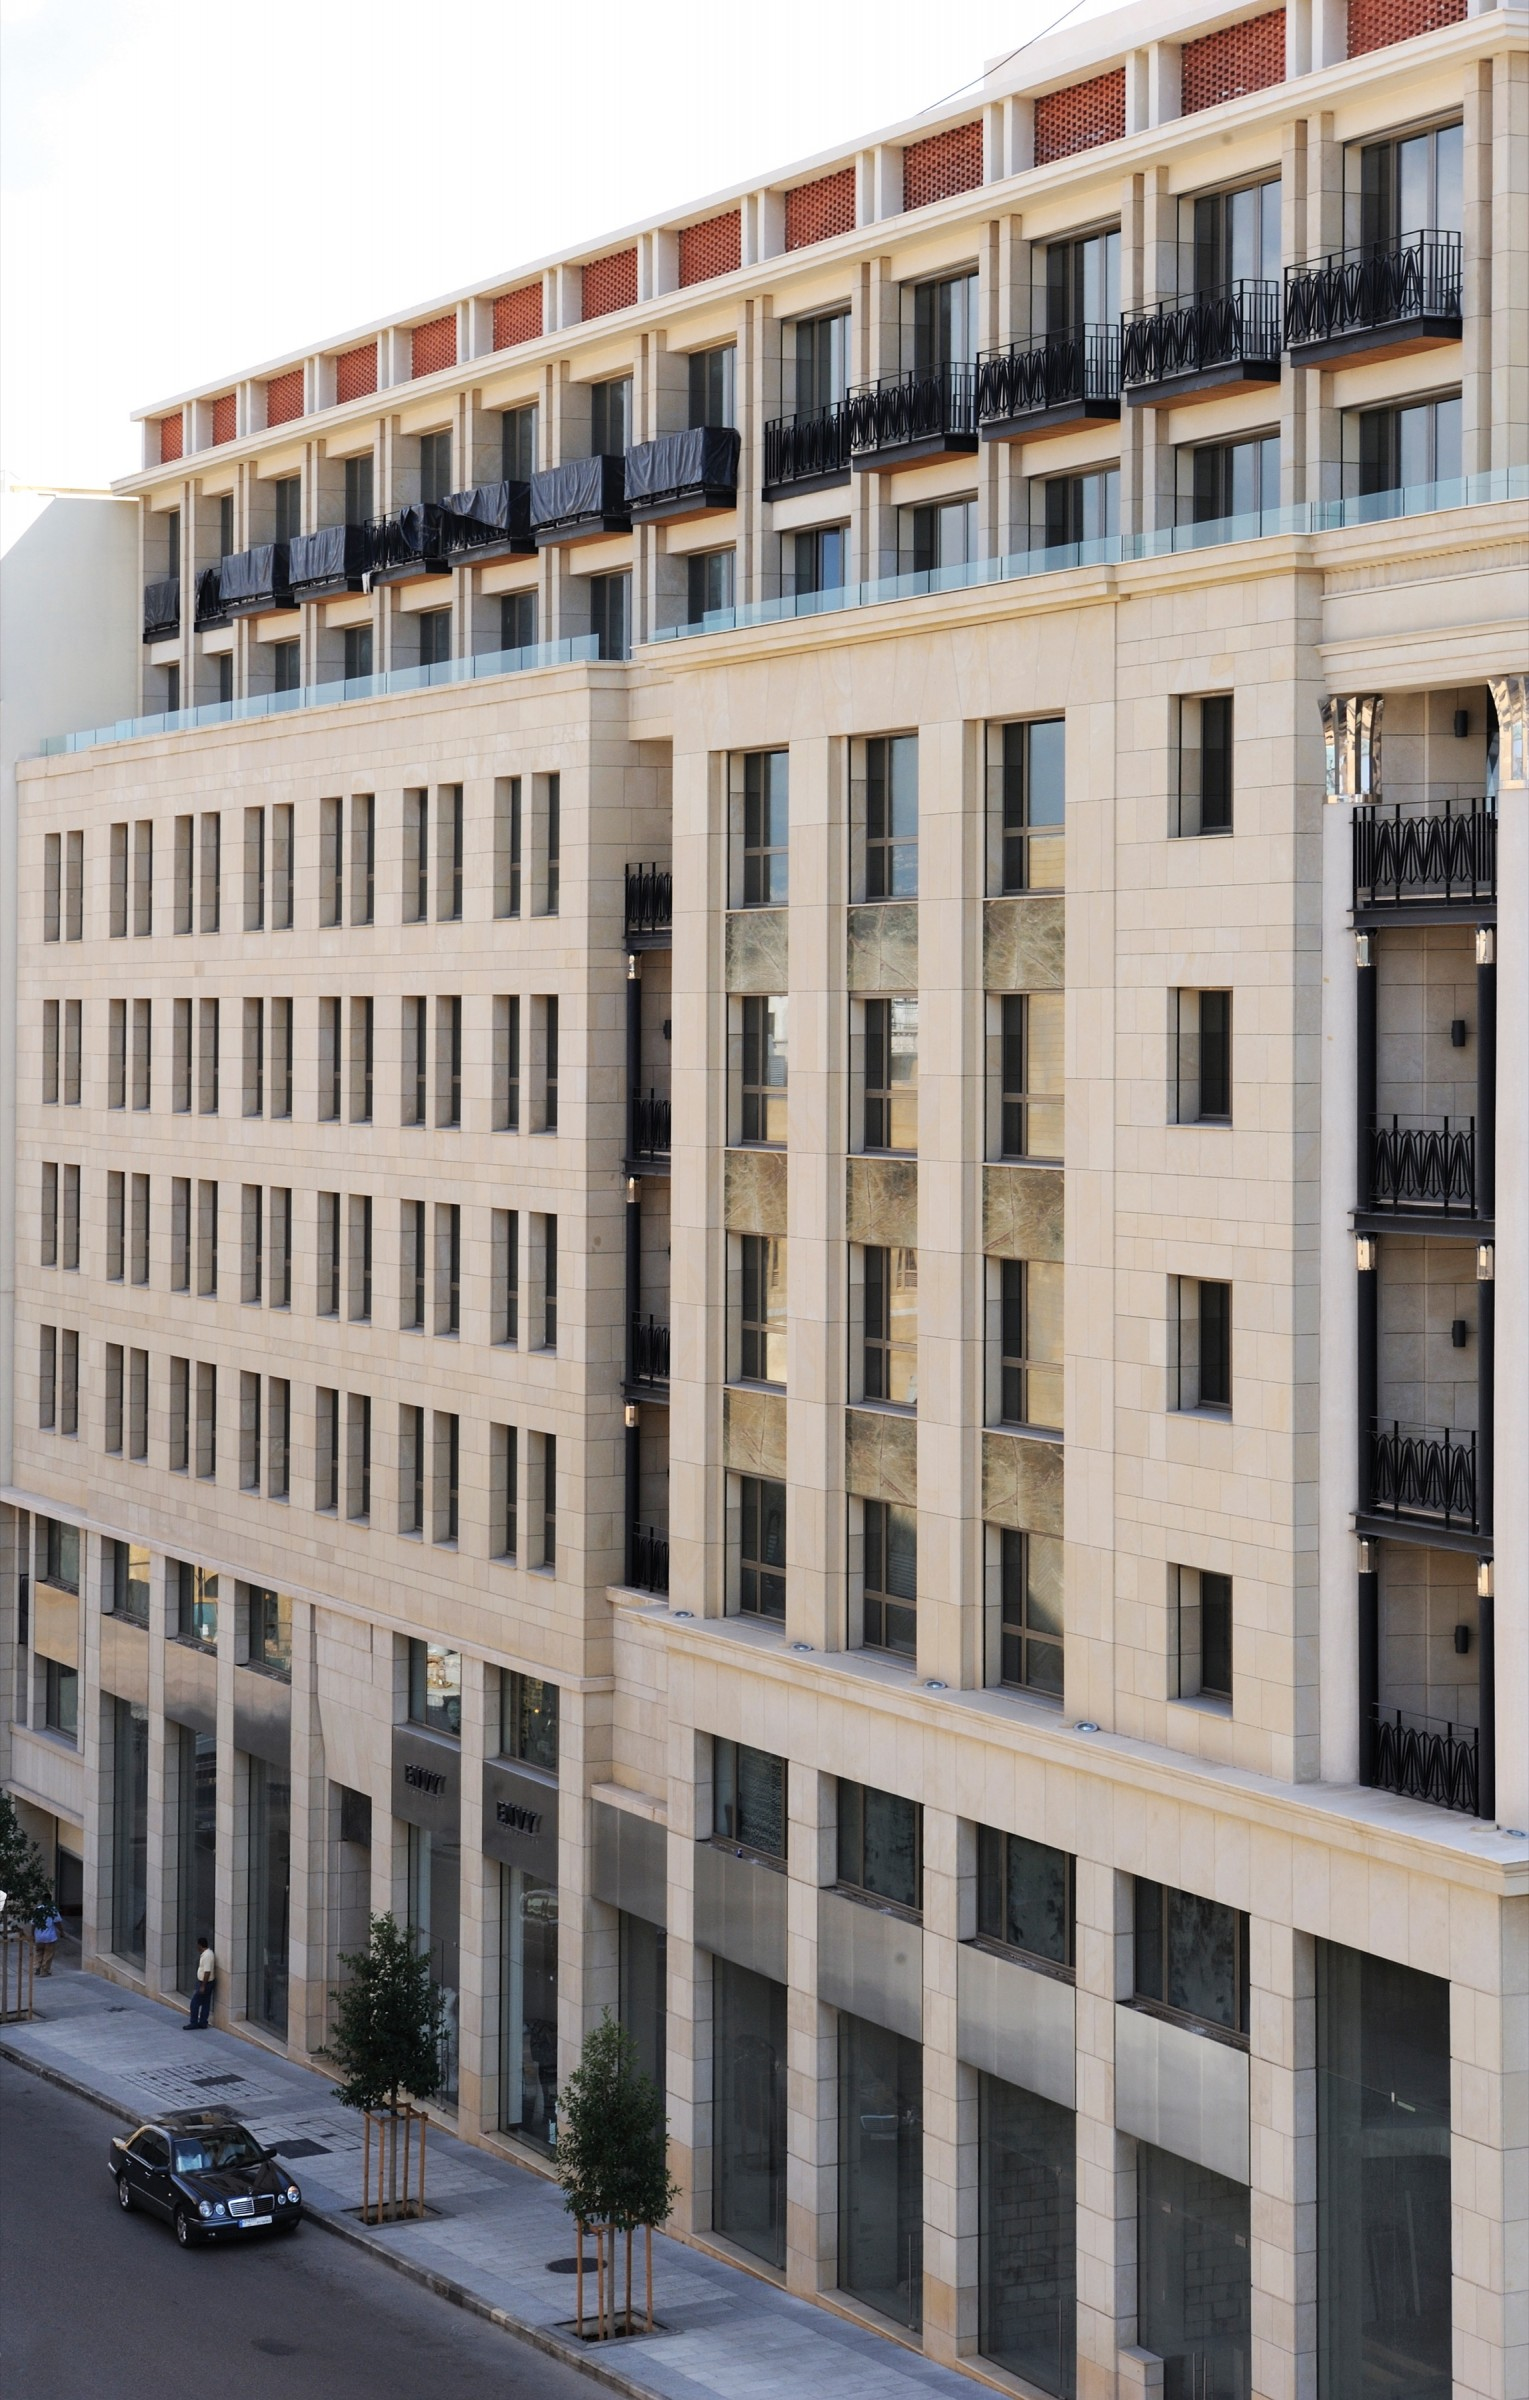 Commercial building on historic site in Beirut